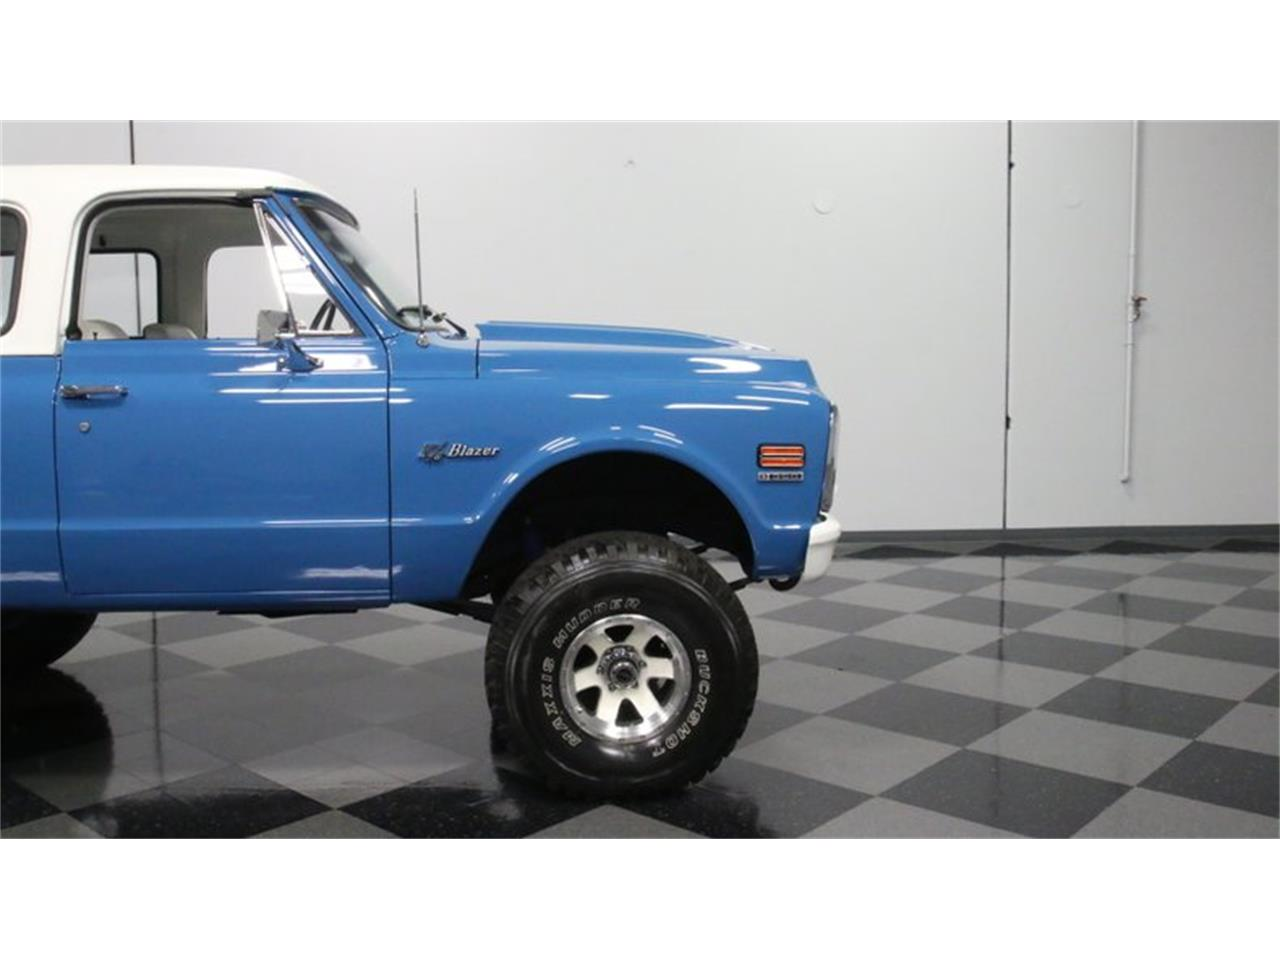 Large Picture of Classic 1971 Chevrolet Blazer located in Lithia Springs Georgia Offered by Streetside Classics - Atlanta - PZLZ